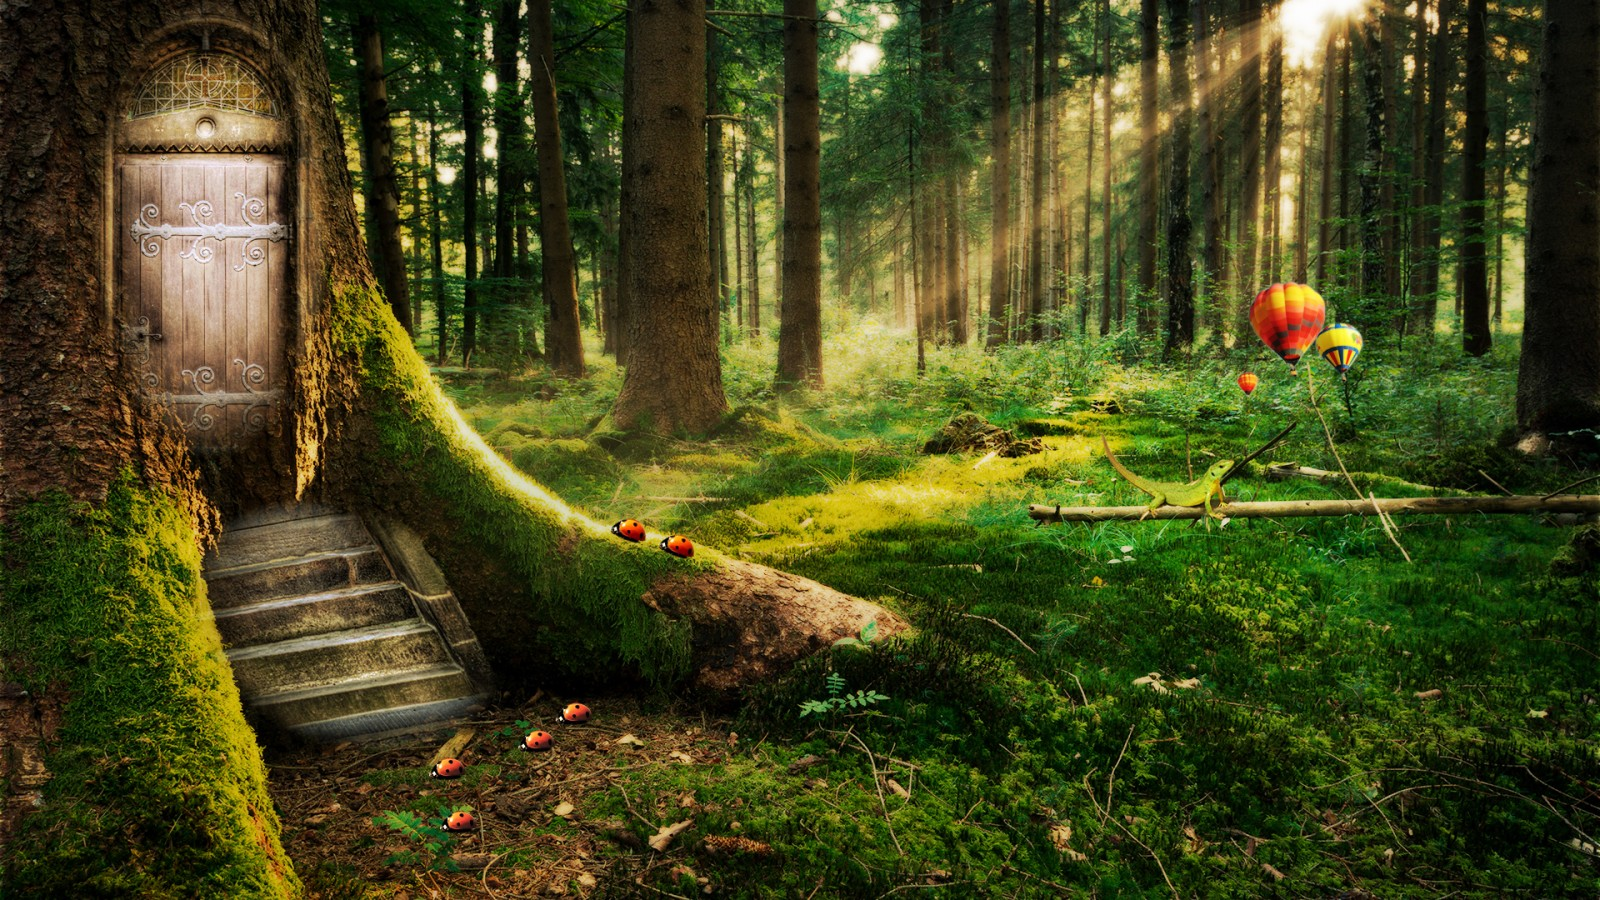 Inspirational Iphone Wallpapers Hd Enchanted Forest Wallpapers Hd Wallpapers Id 11925